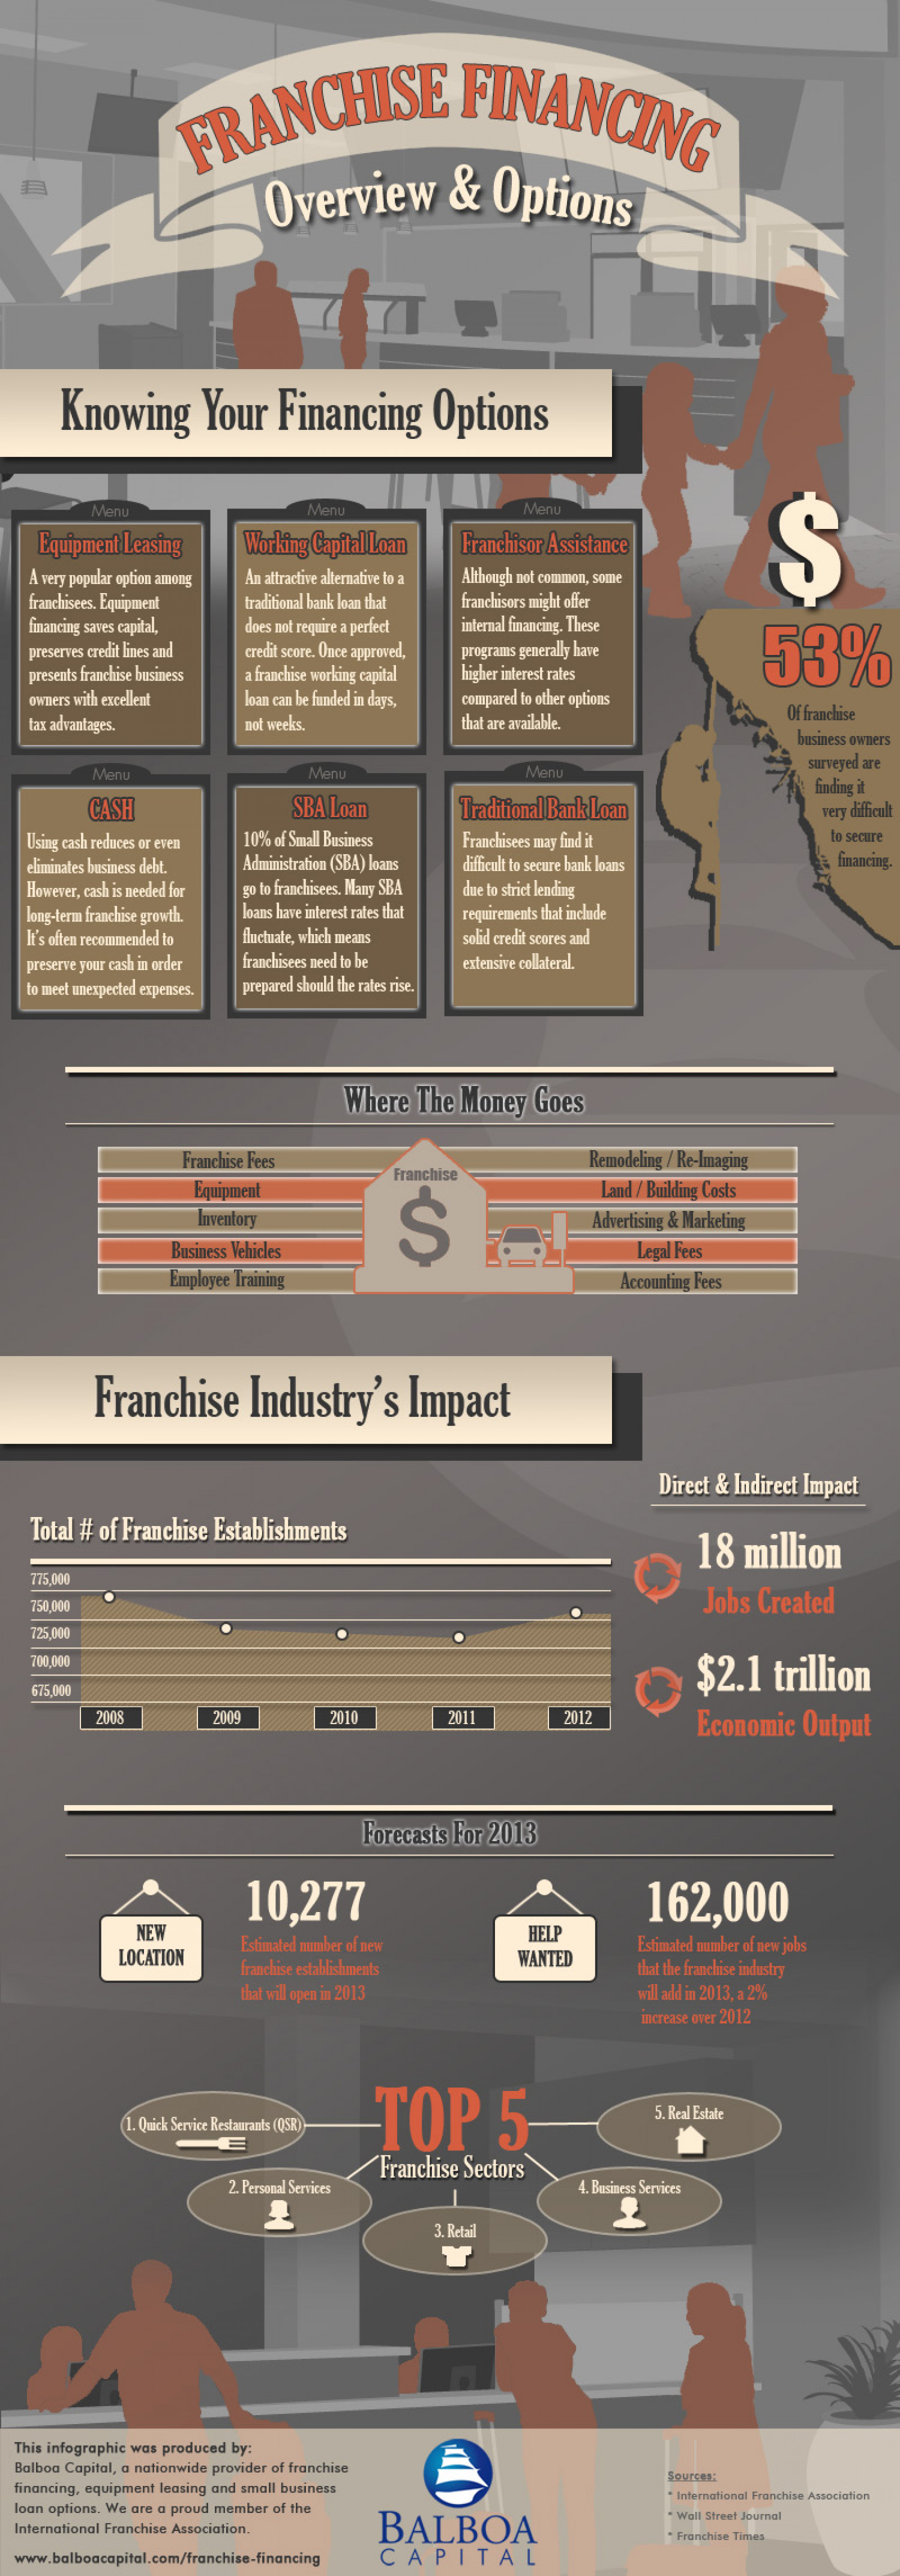 Franchise Financing Infographic Infographic